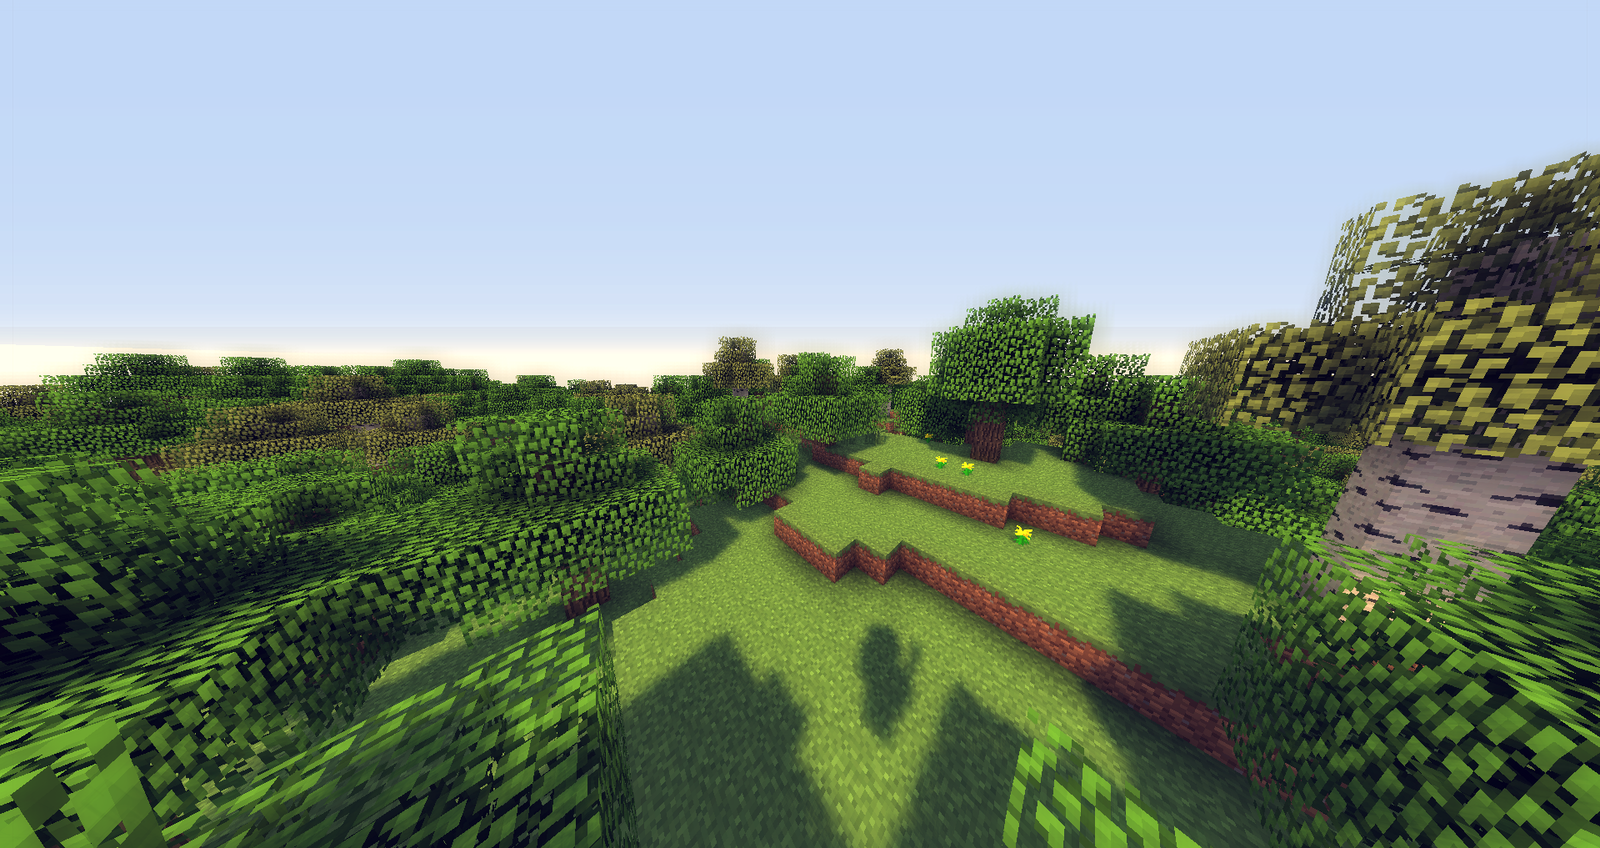 MrMeep_x3's Shaders Pack